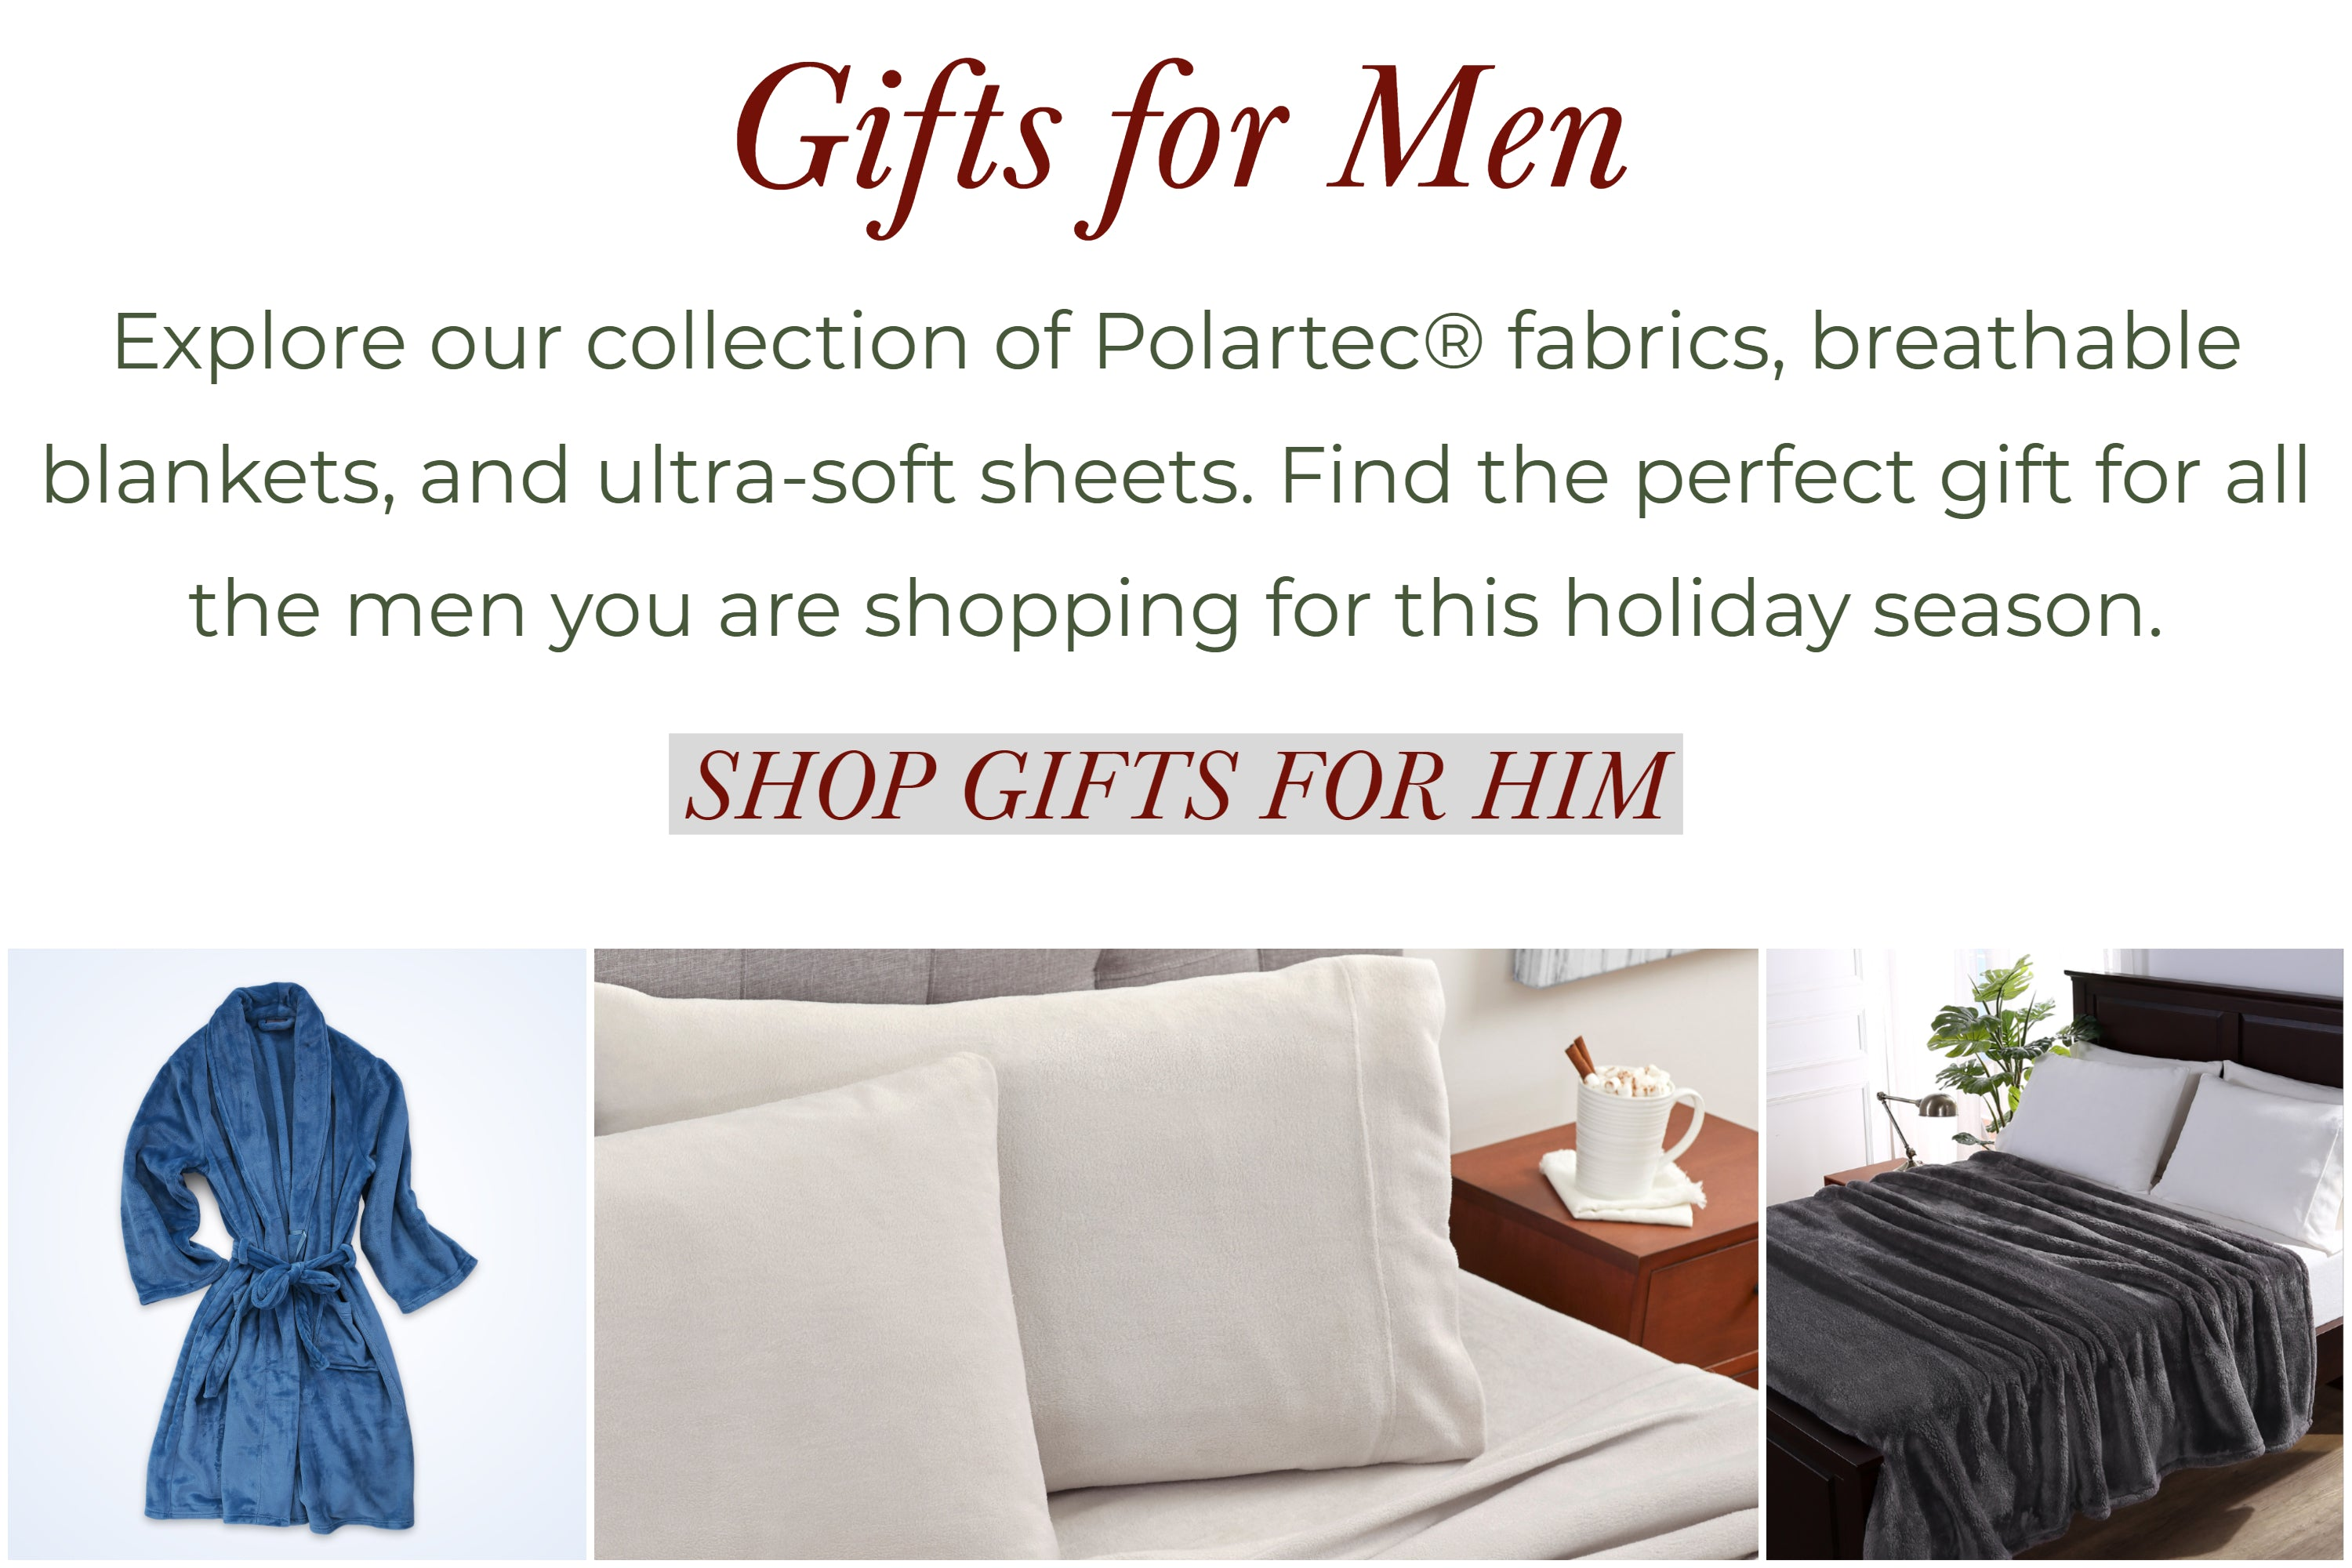 Gifts for men. Explore our collection of Polartec fabrics, breathable blankets, and ultra-soft sheets. Find the perfect gift for all the men you are shopping for this Holiday season.